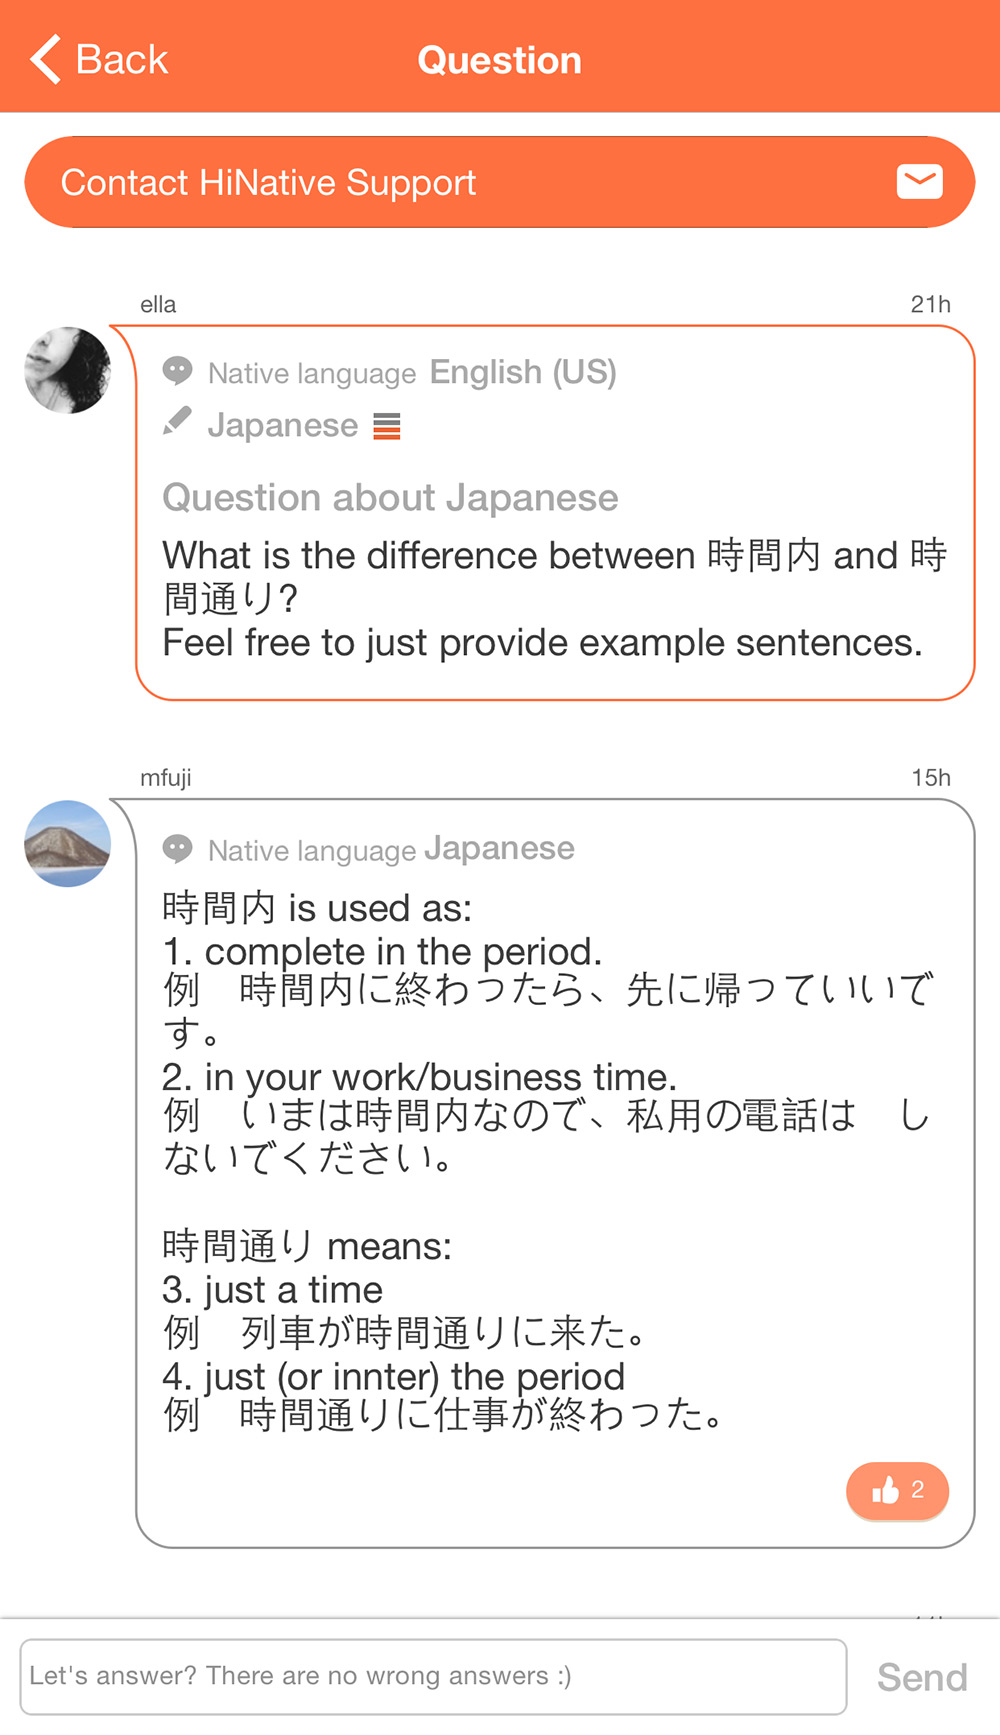 HiNative user submitting a question to a native Japanese speaker